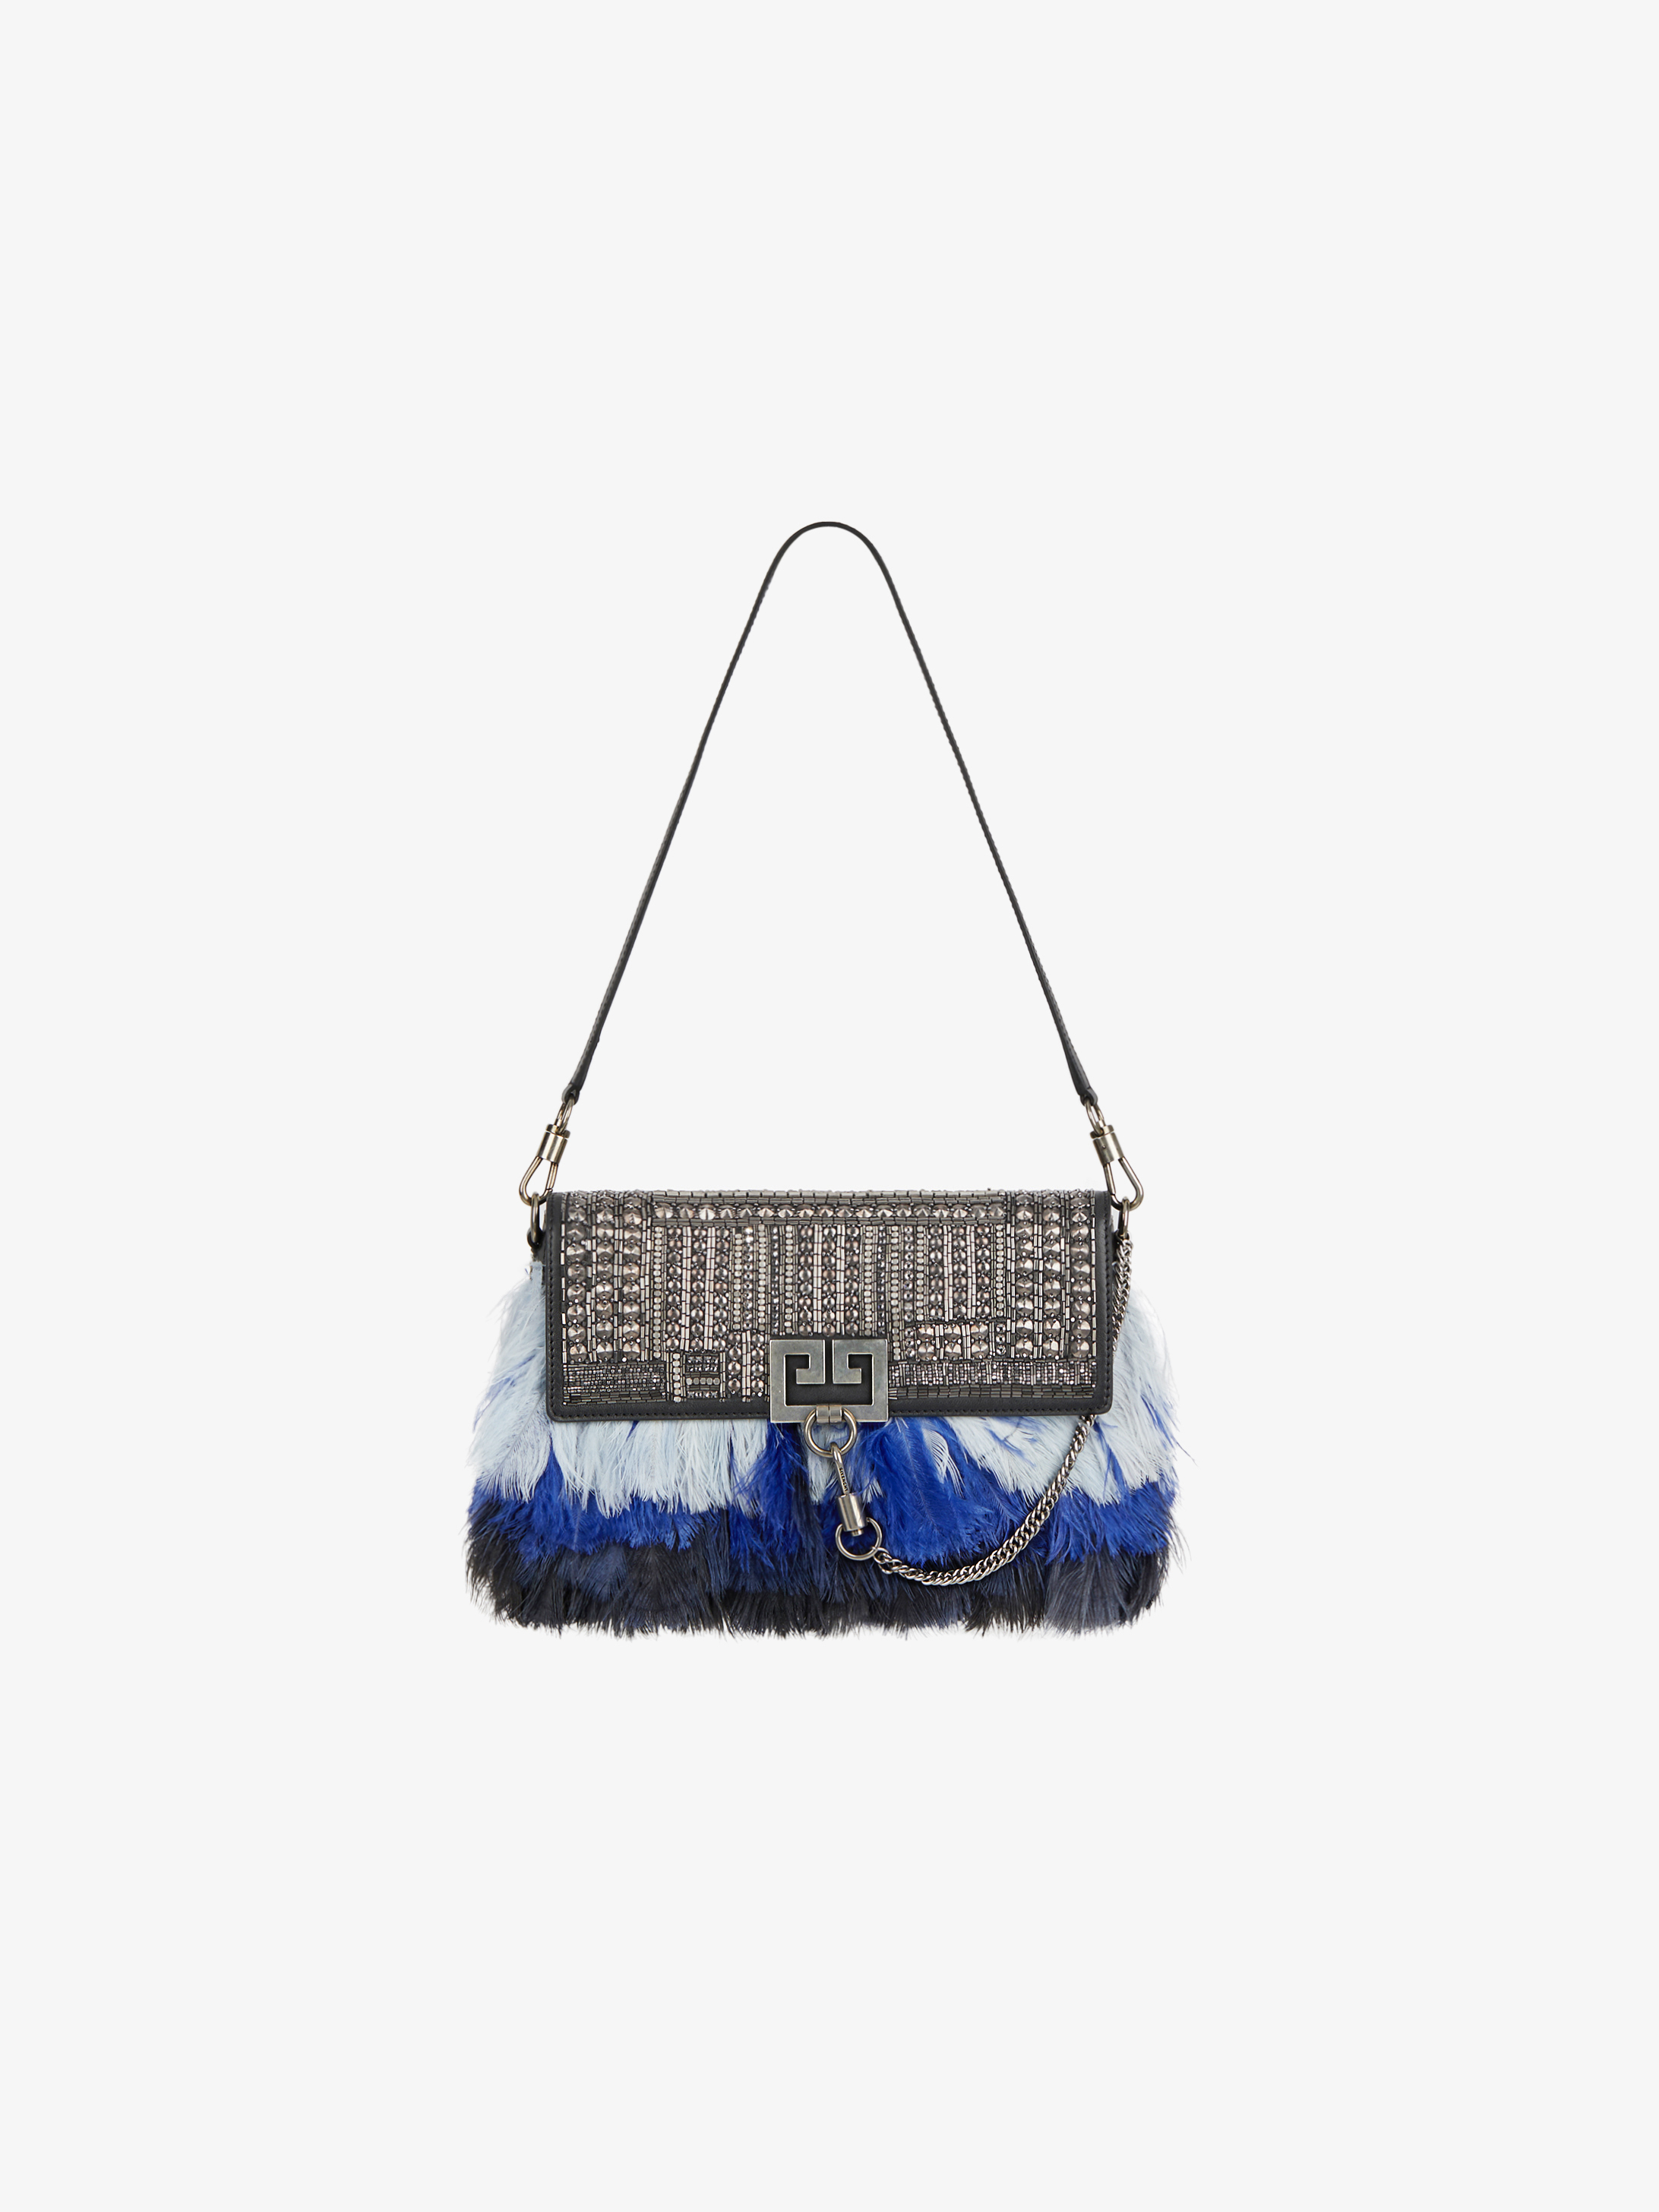 Crytals and feathers embroidered Charm bag